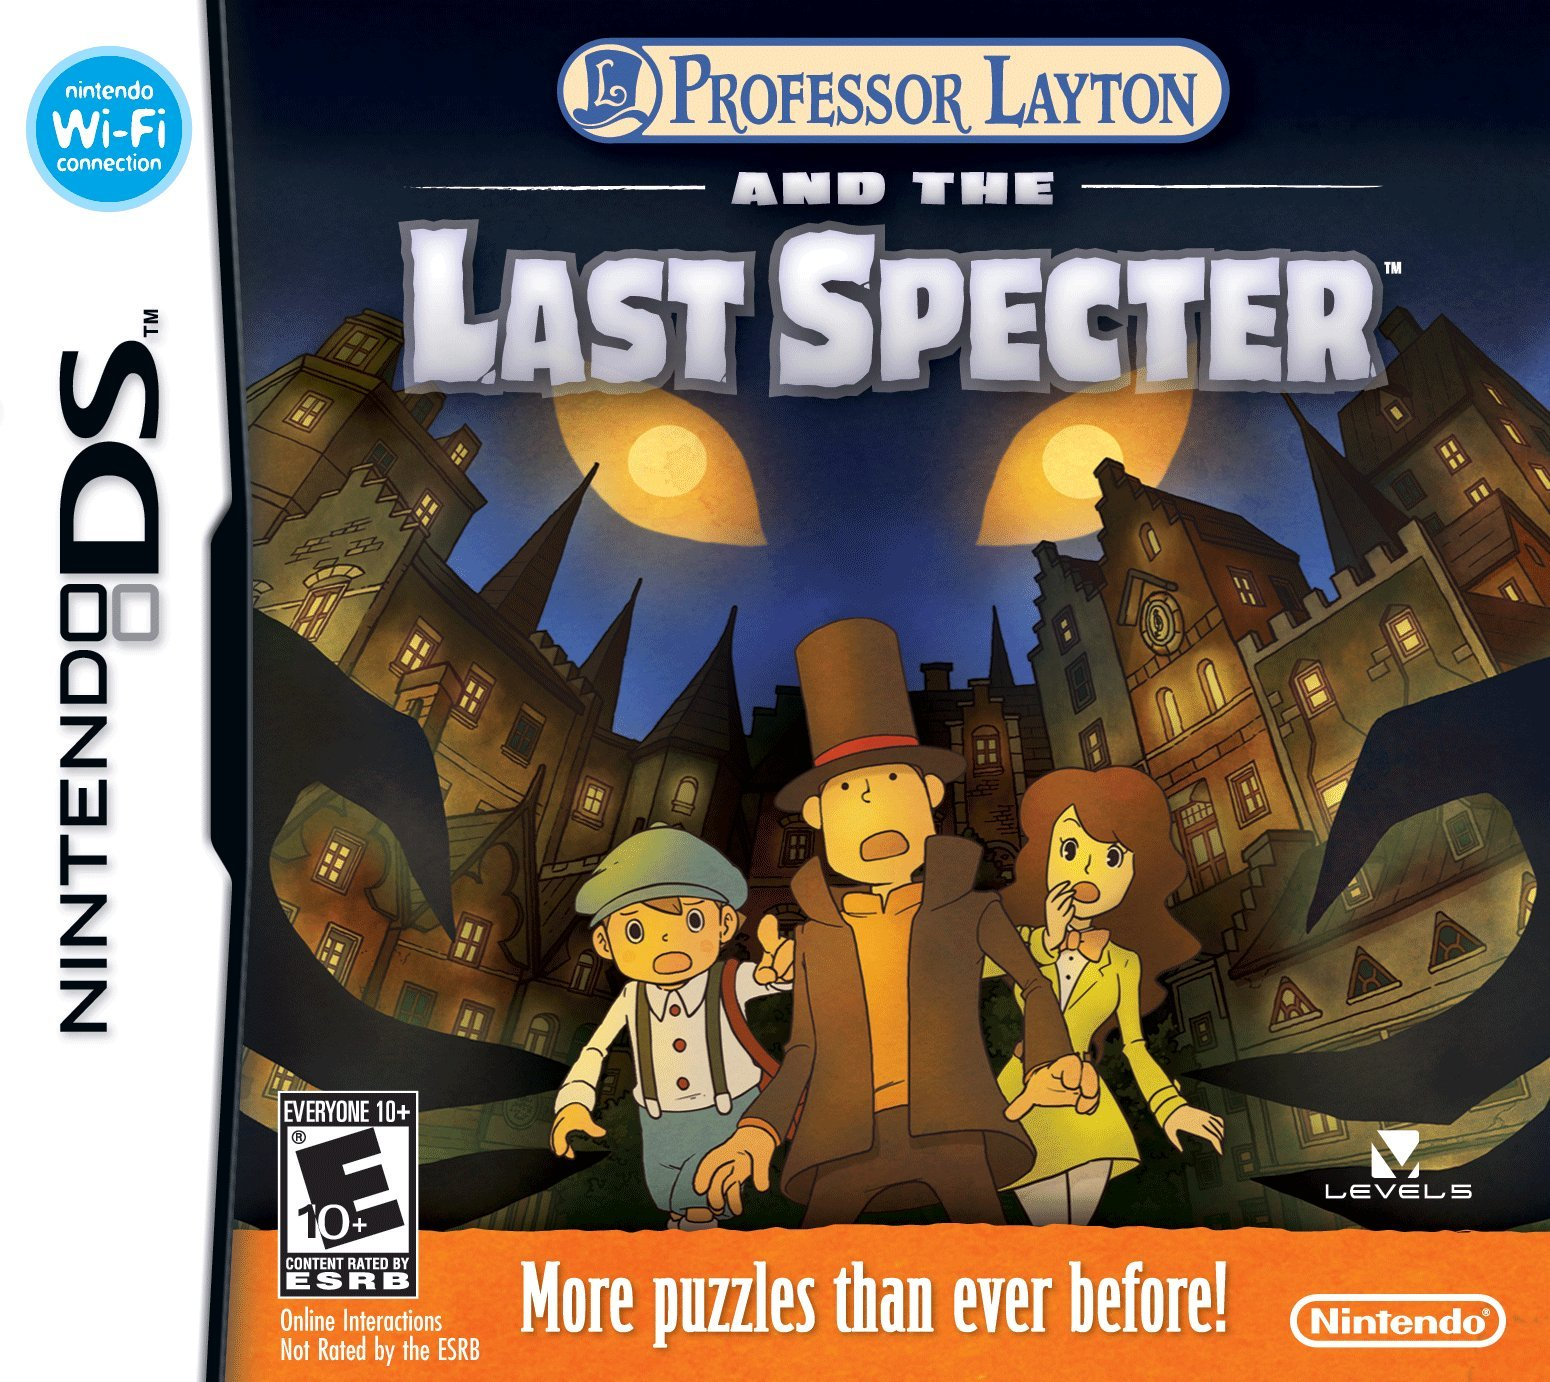 Professor Layton and the Last Specter - Nintendo DS